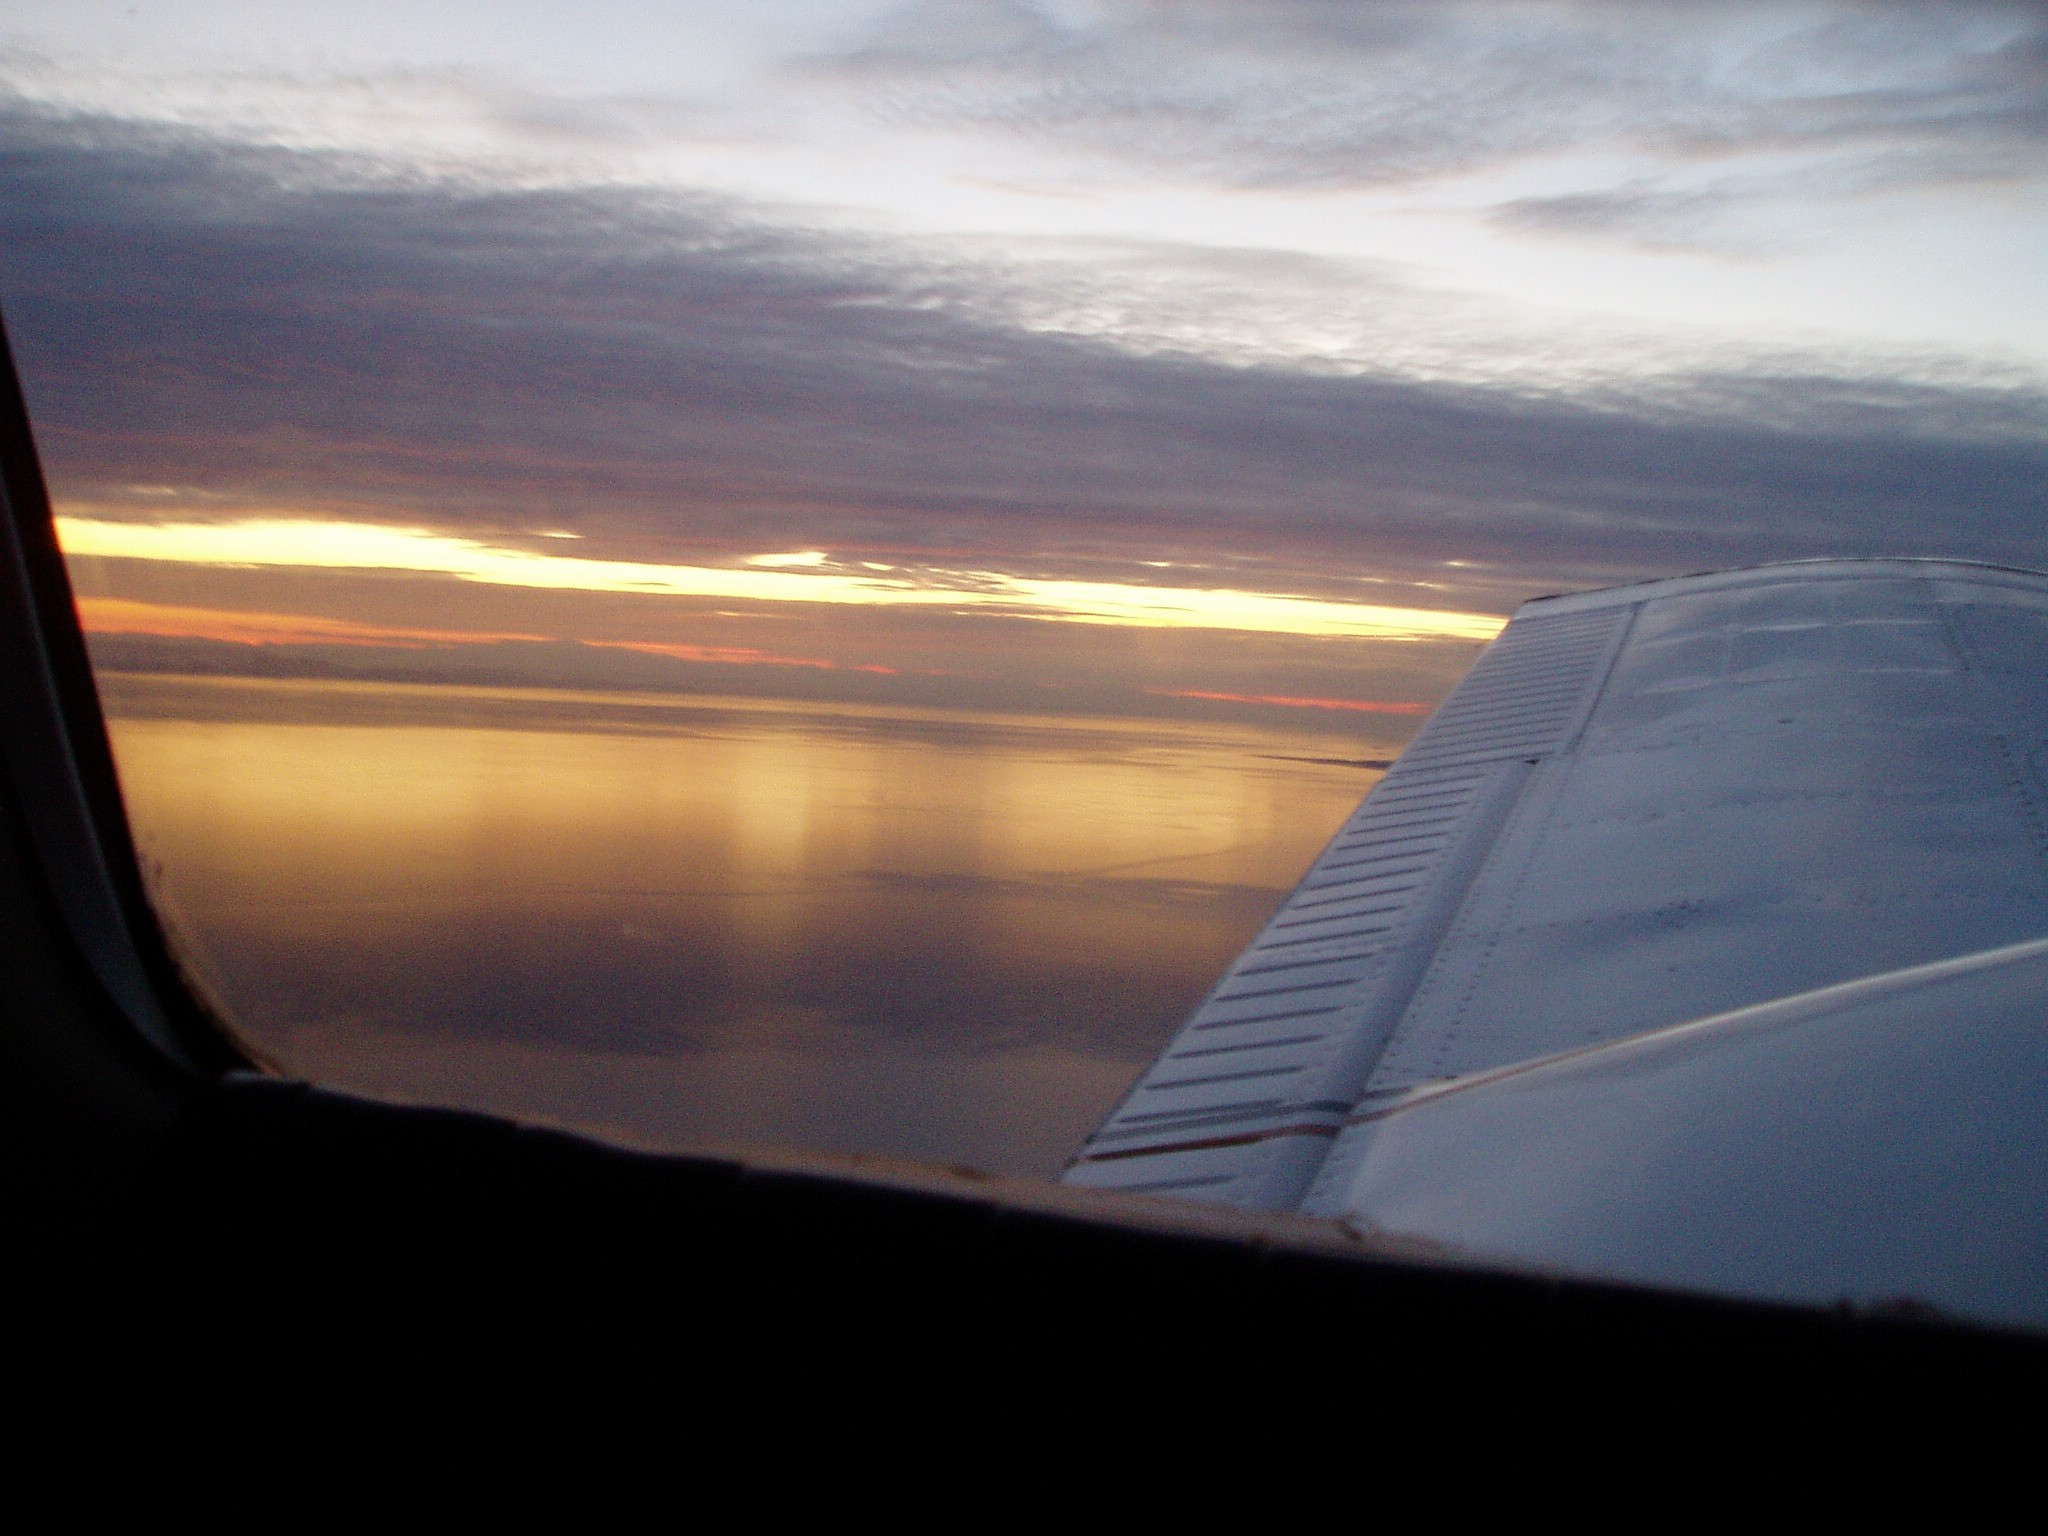 Sunset over the Georgia Strait, Langley Flying School